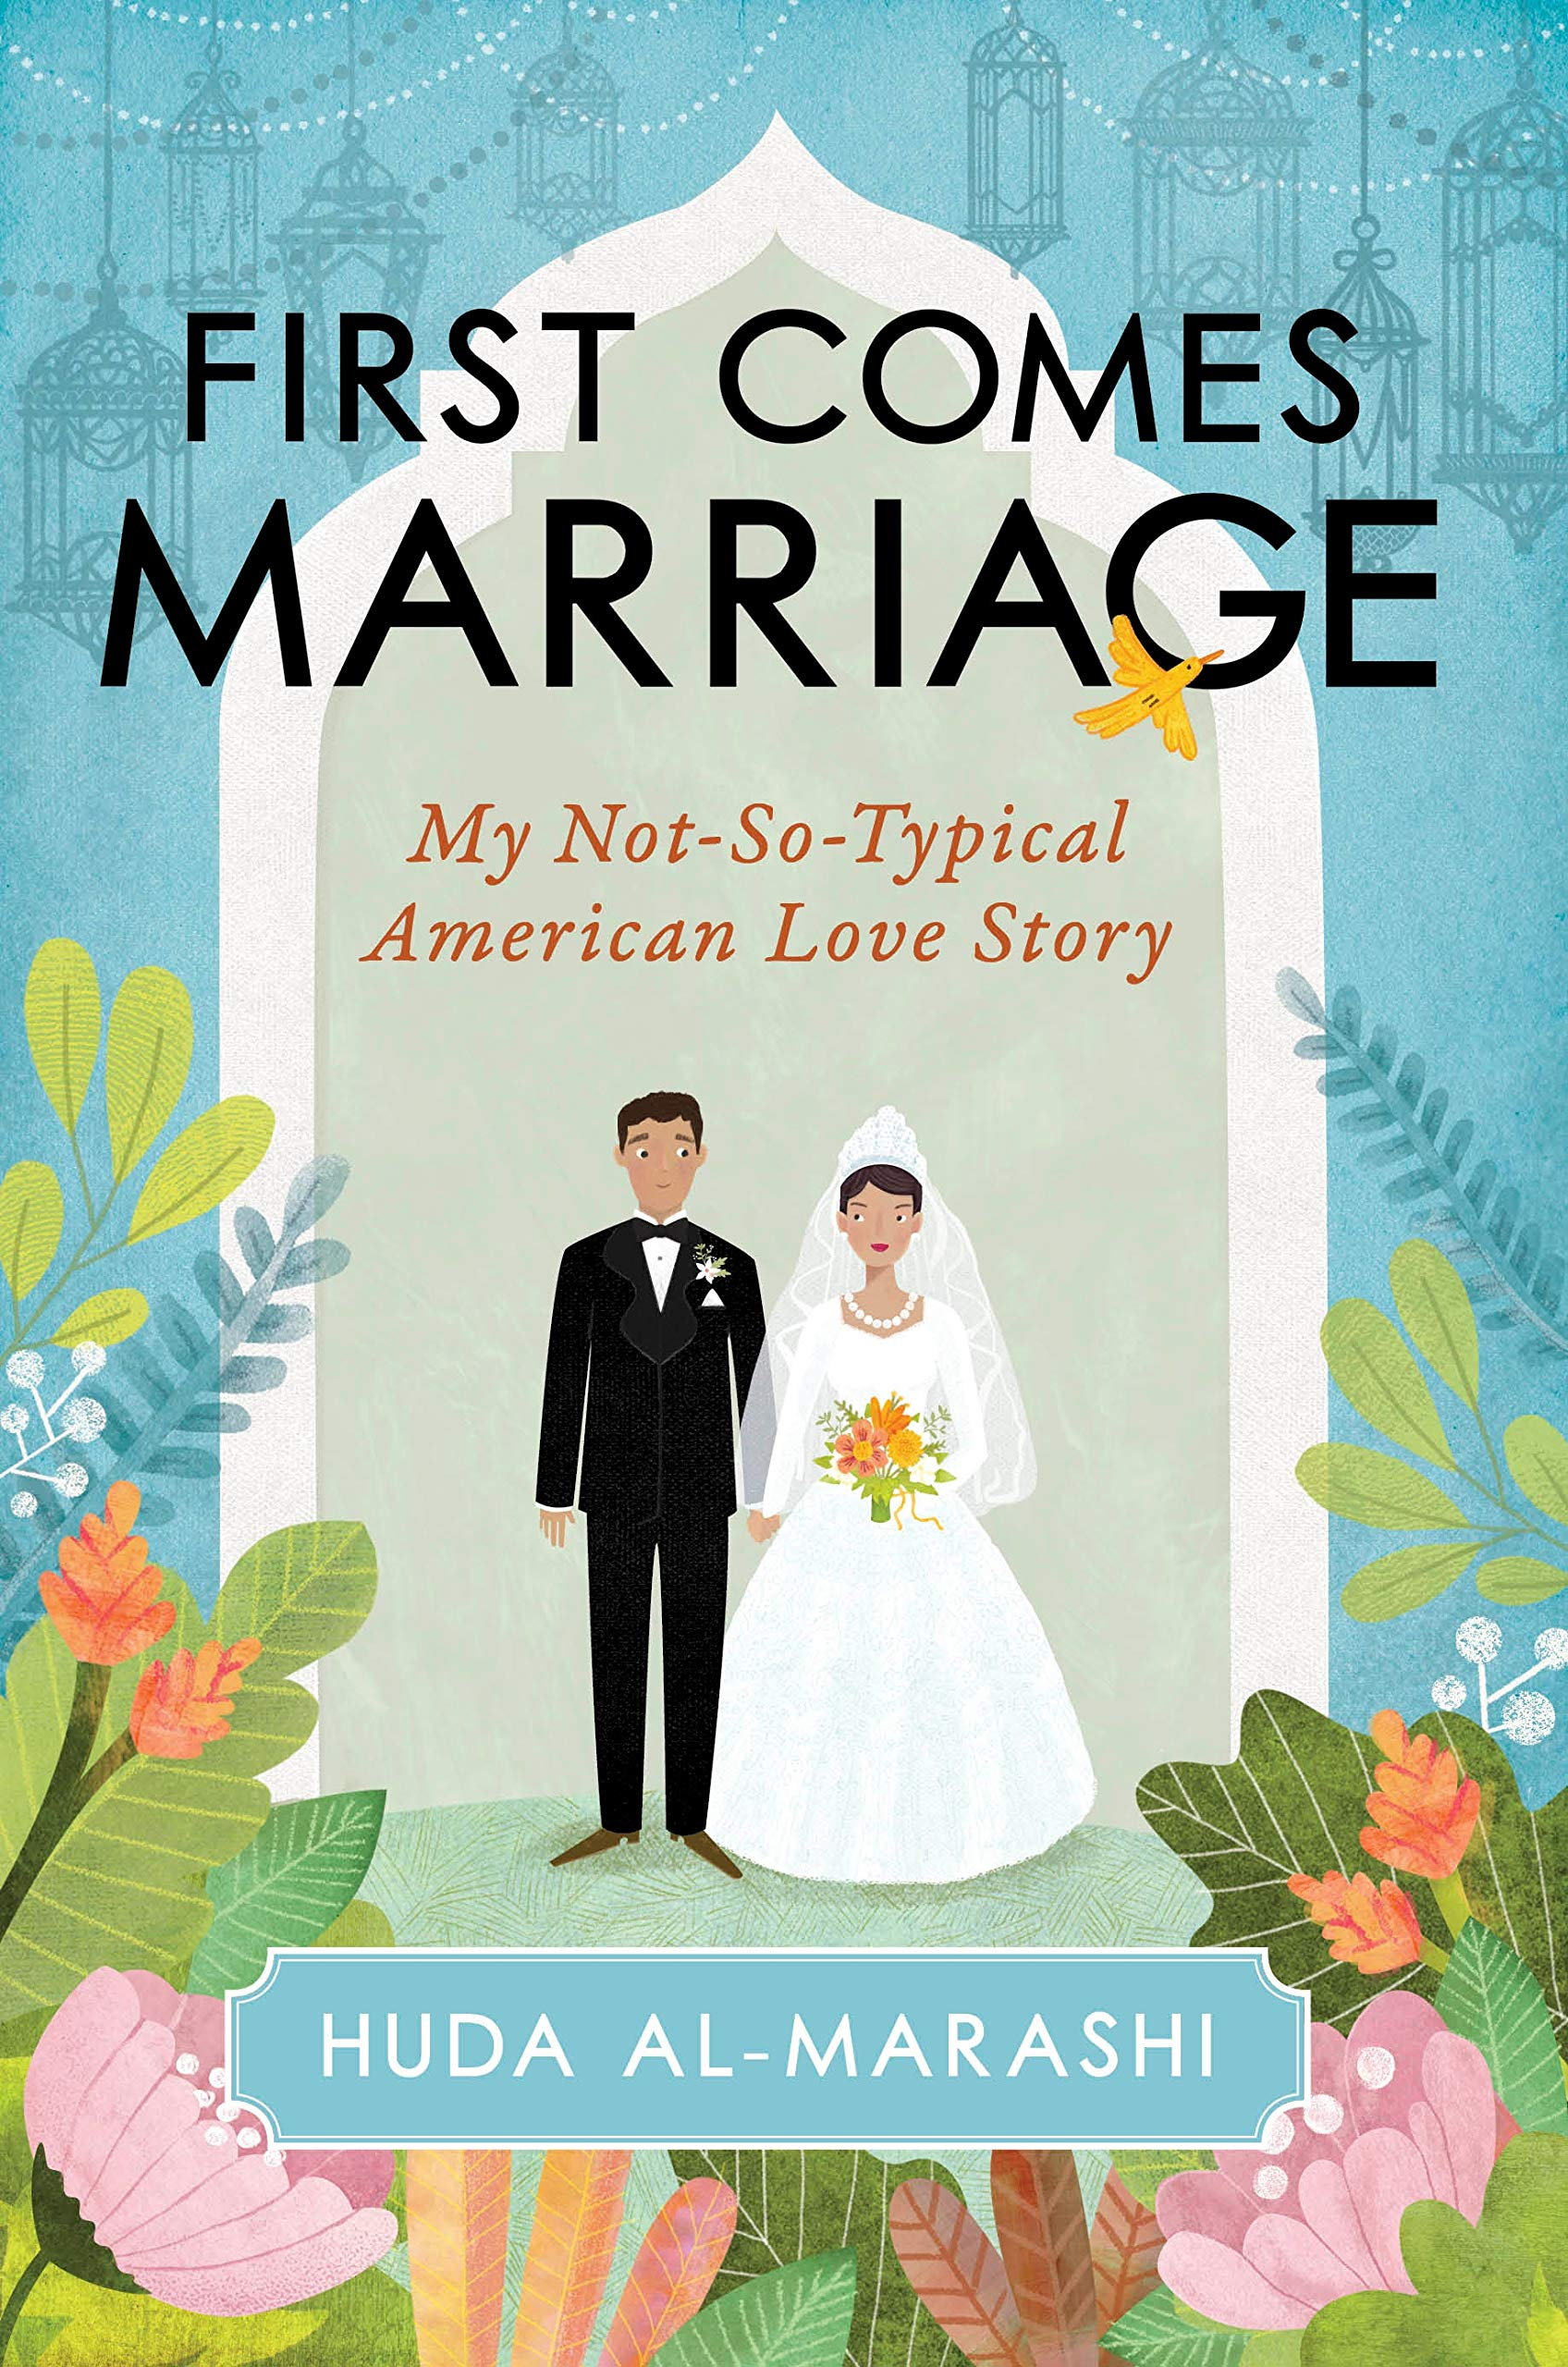 First Comes Marriage: My Not-So-Typical American Love Story: Huda Al